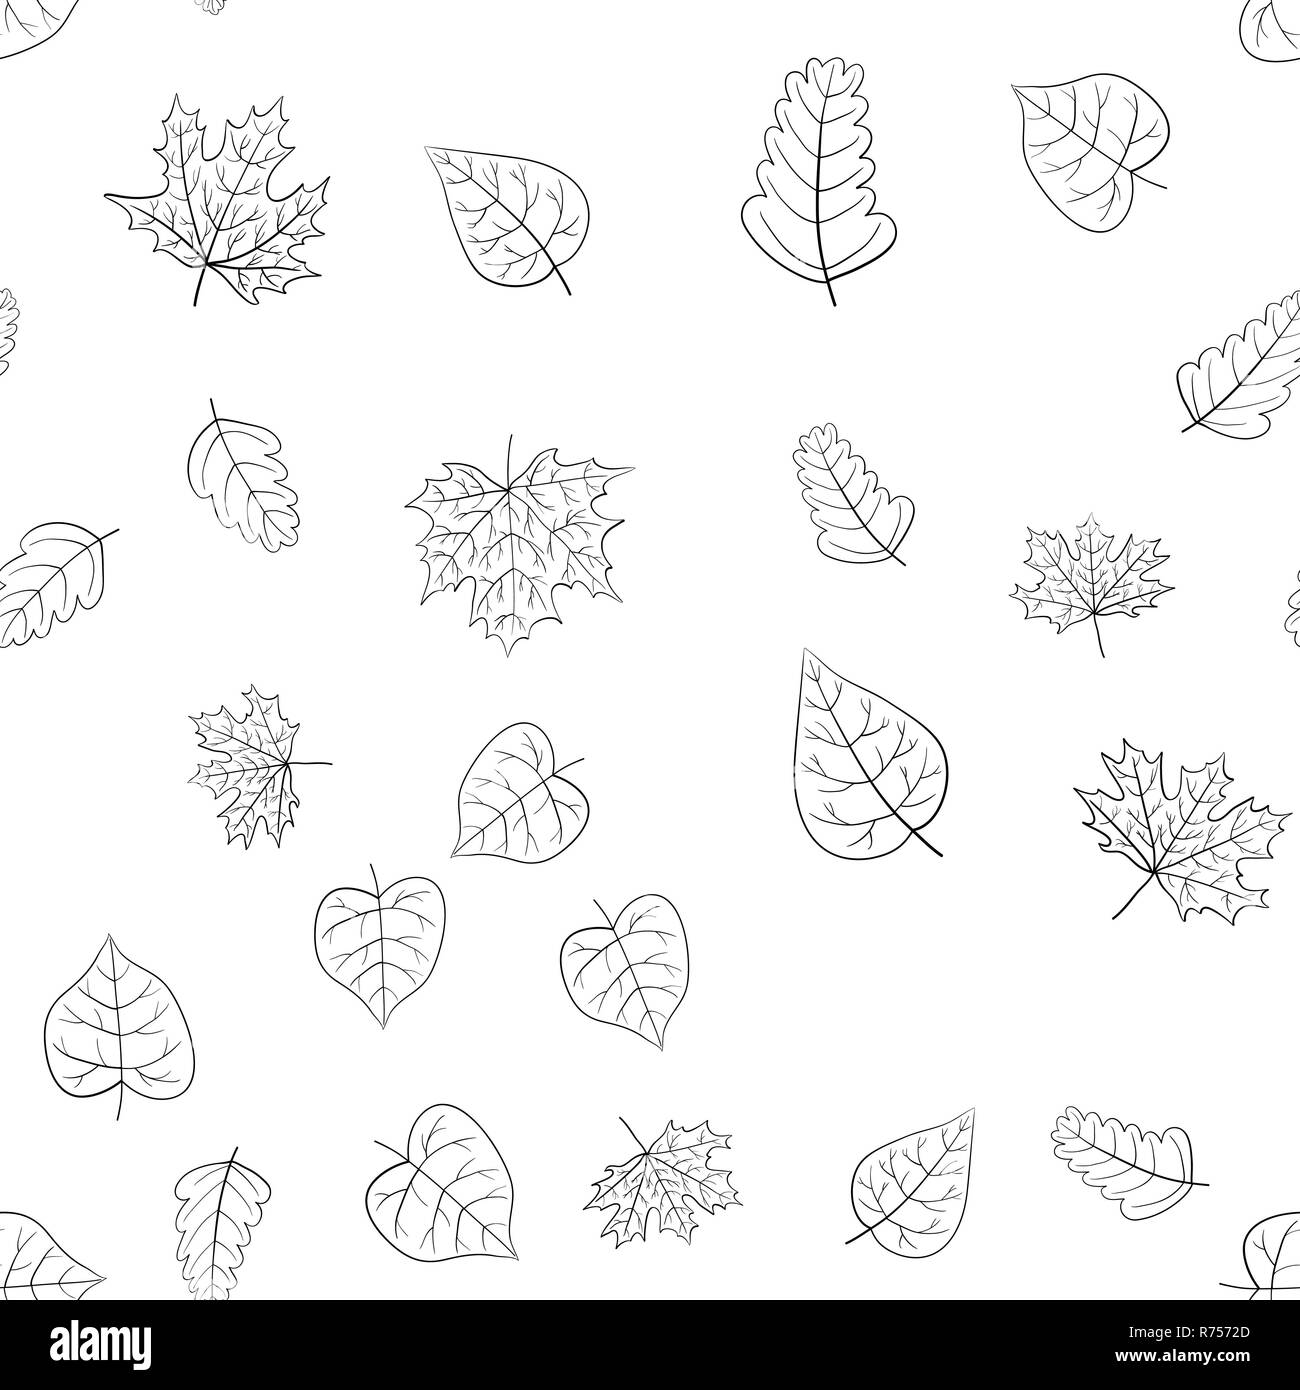 Abstract Vector Doodle Autumn Leaves Seamless Pattern Stock Photo Alamy